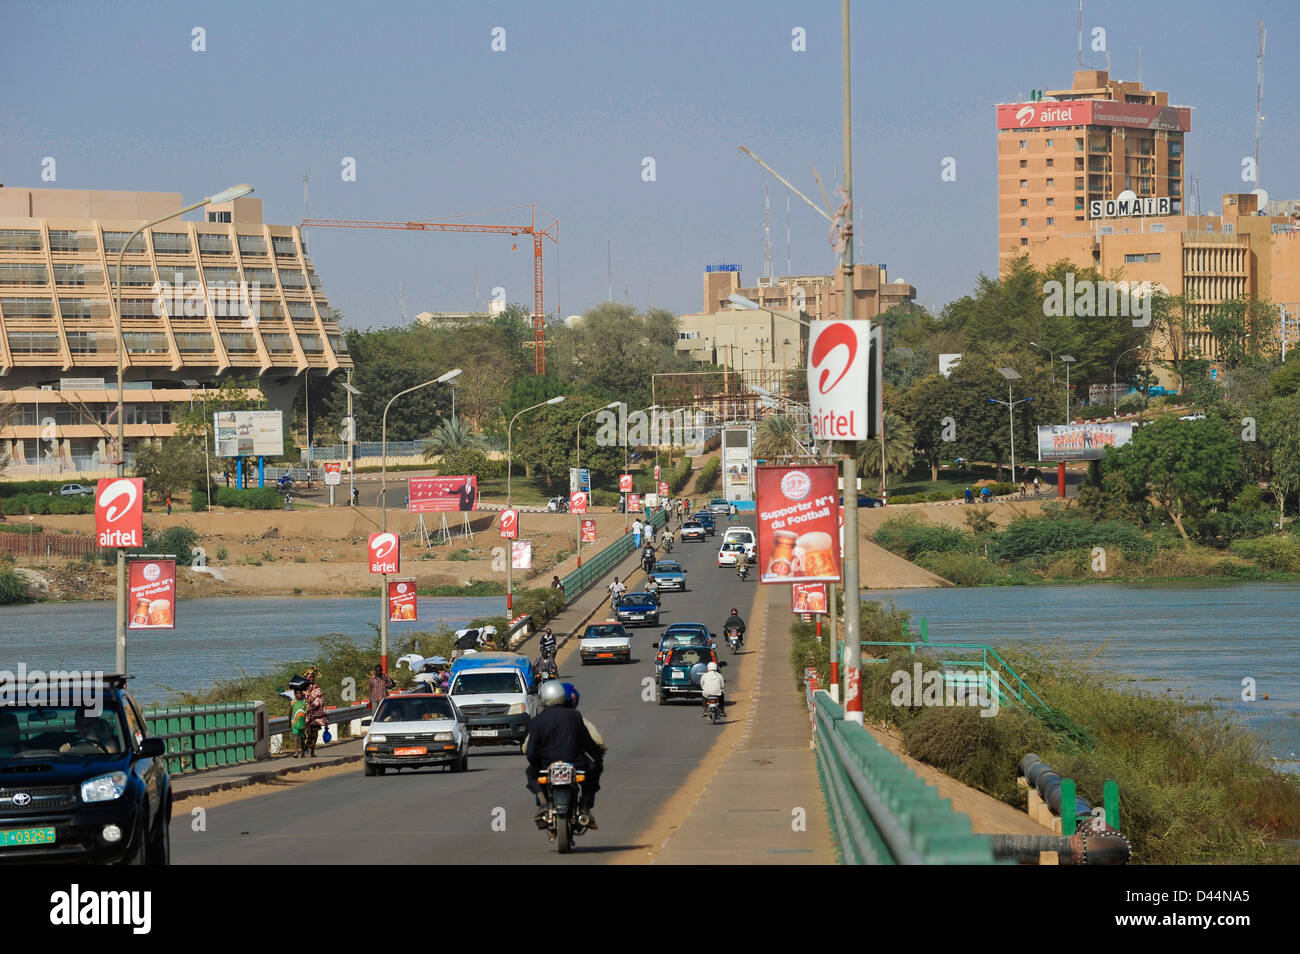 The capital of Niger is Niamey 63